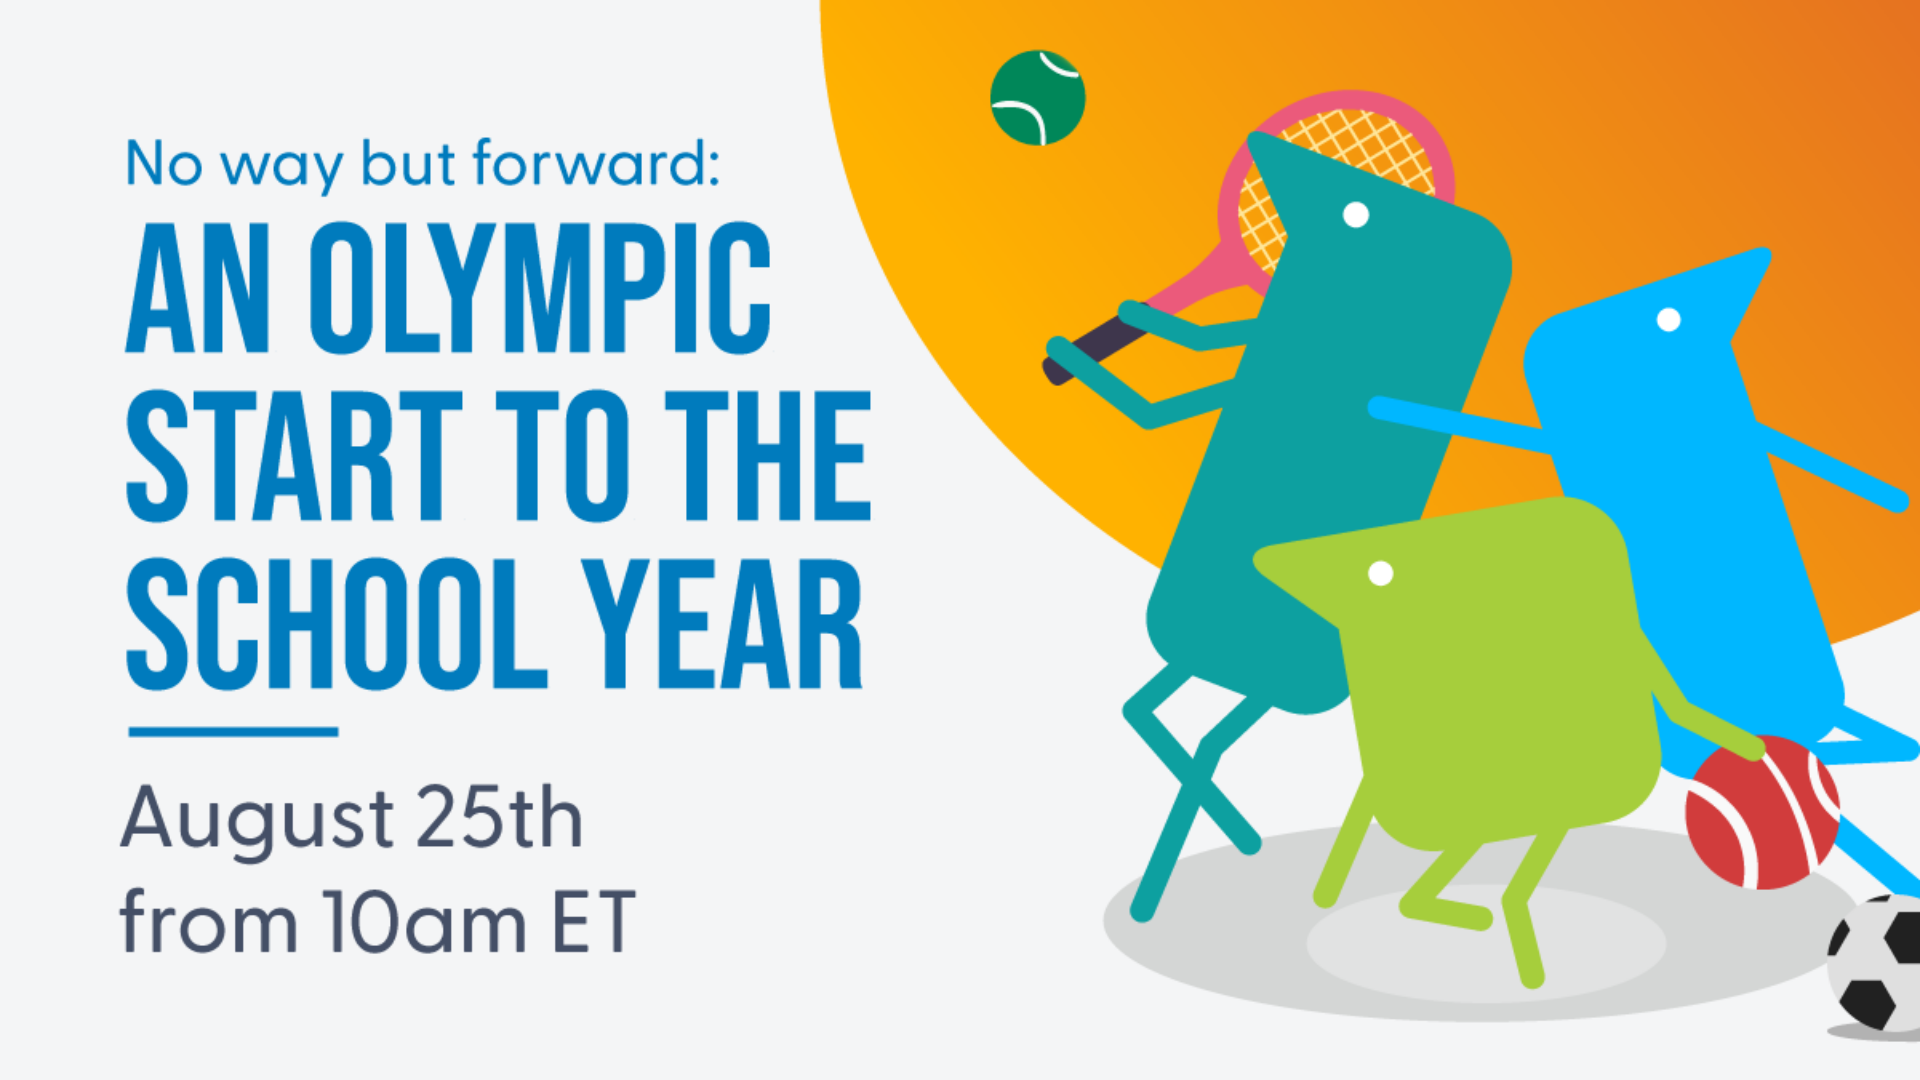 Header image shows text: No way but forward: an Olympic start to the school year, August 25th from 10am ET